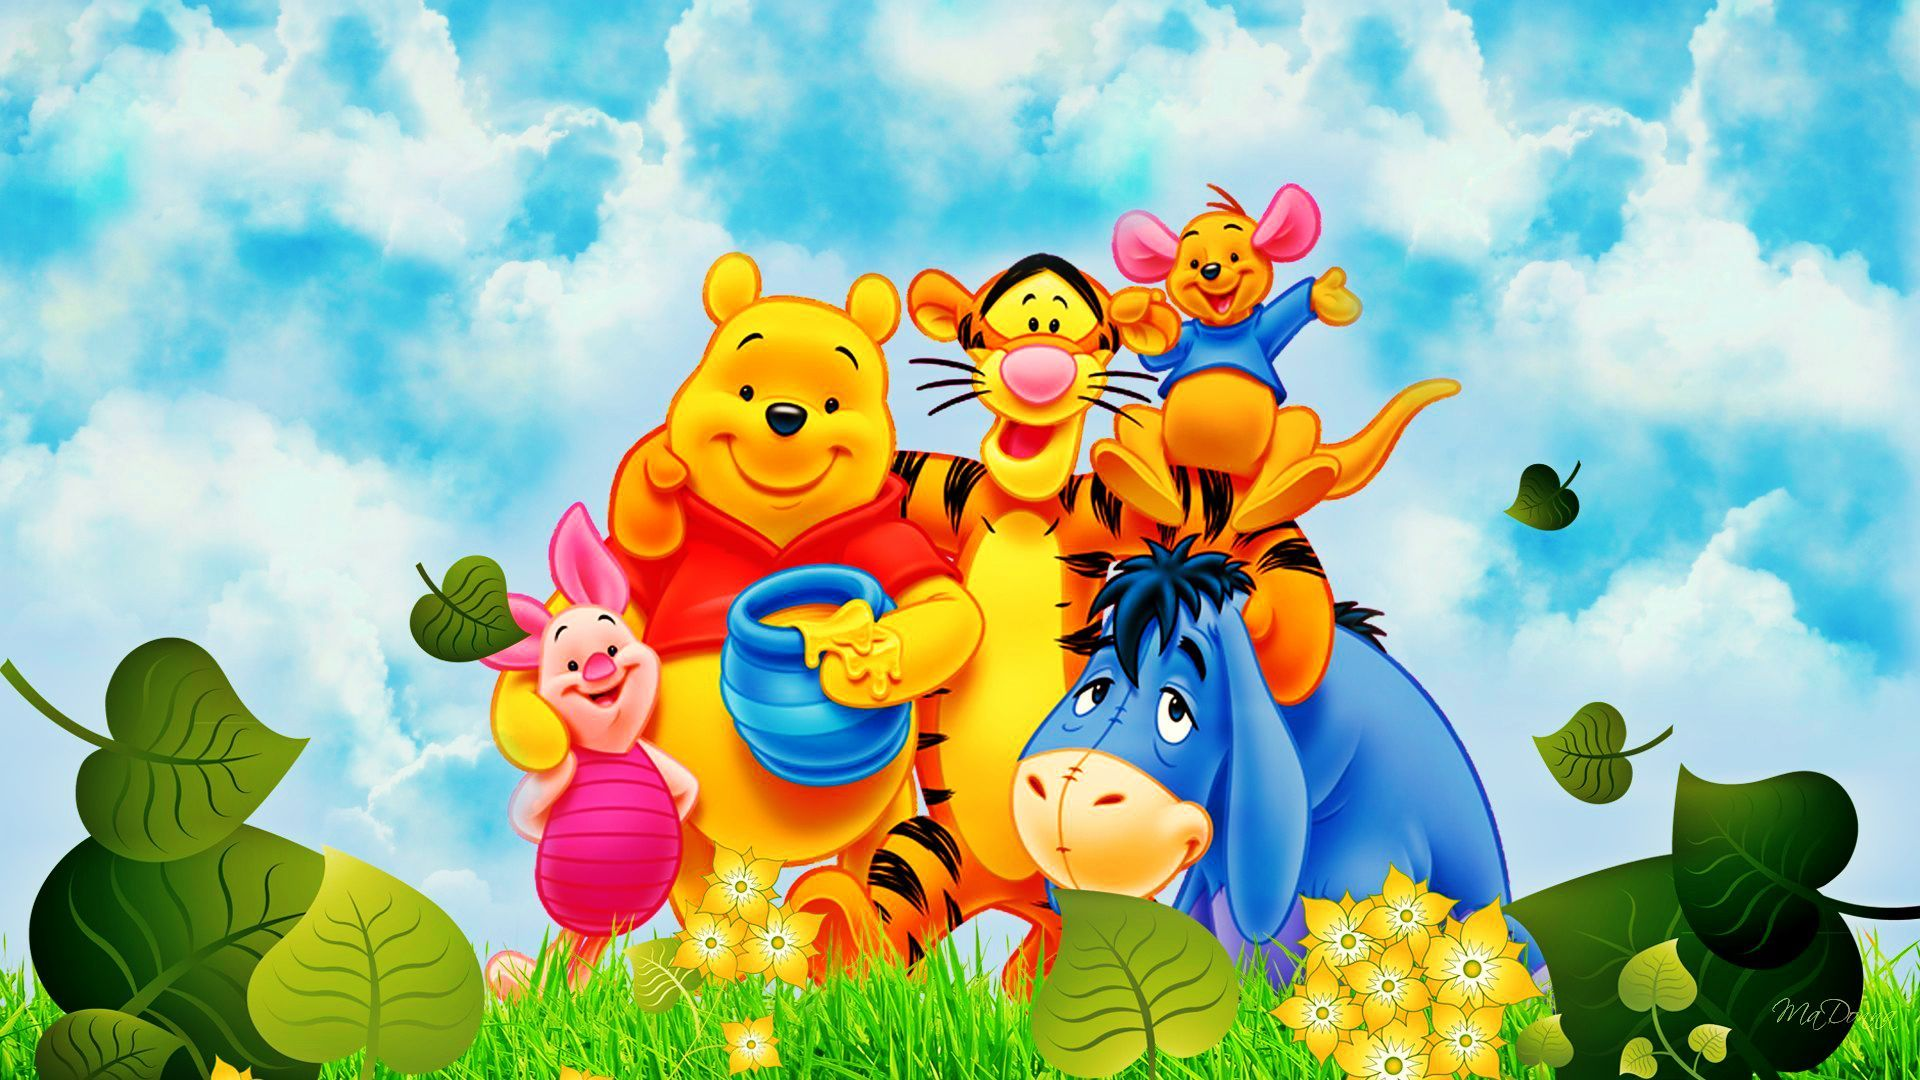 Winnie The Pooh Hd Wallpapers Silly Ol Bear Winnie The Pooh